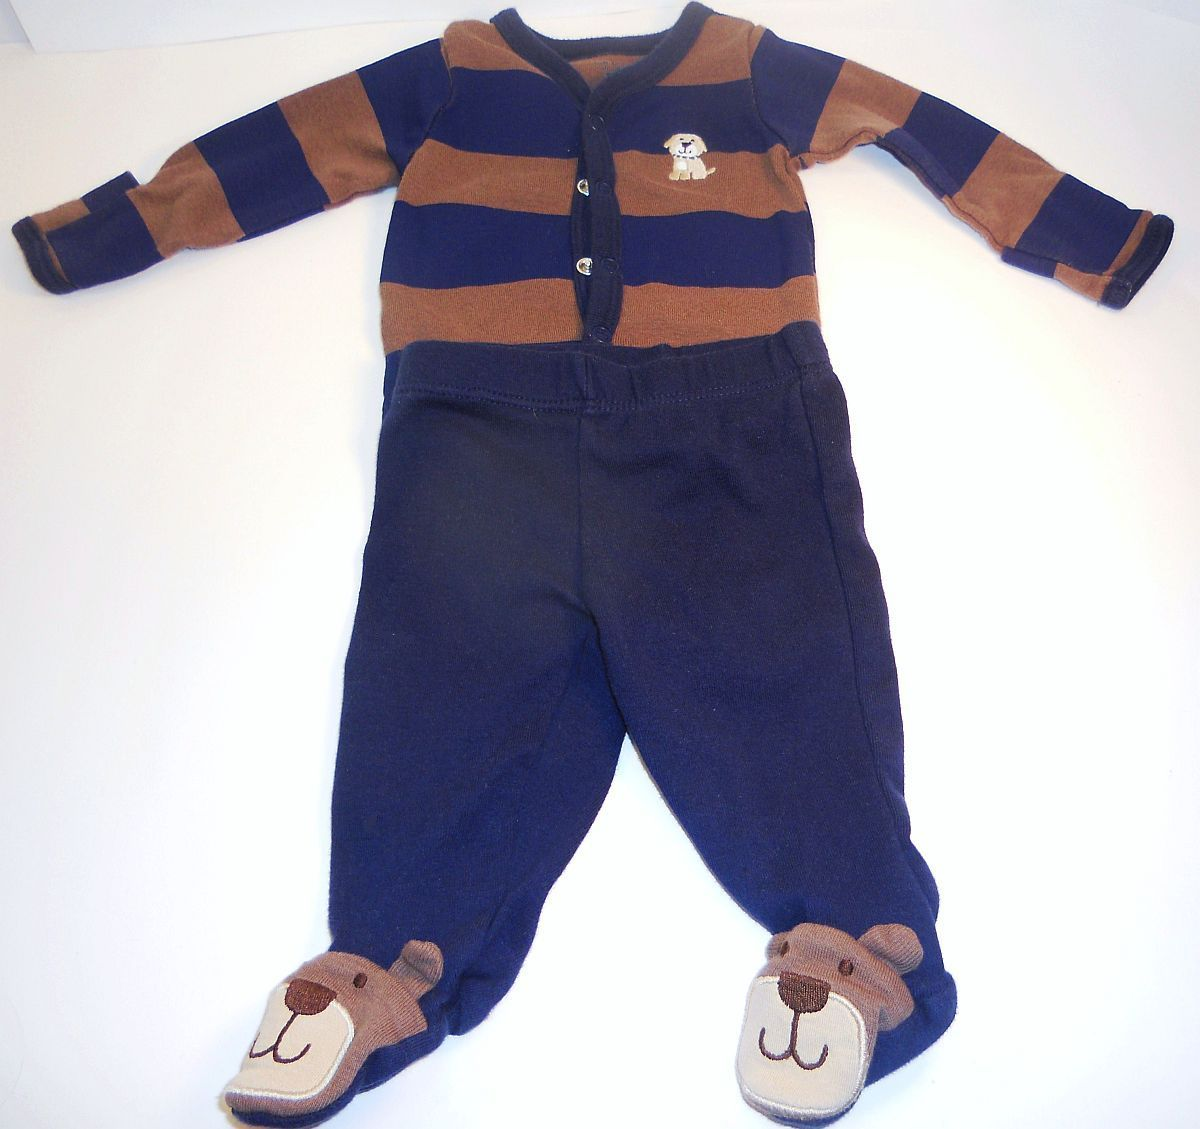 Primary image for Carter's boys blue brown shirt puppy footie pants outfit New Born